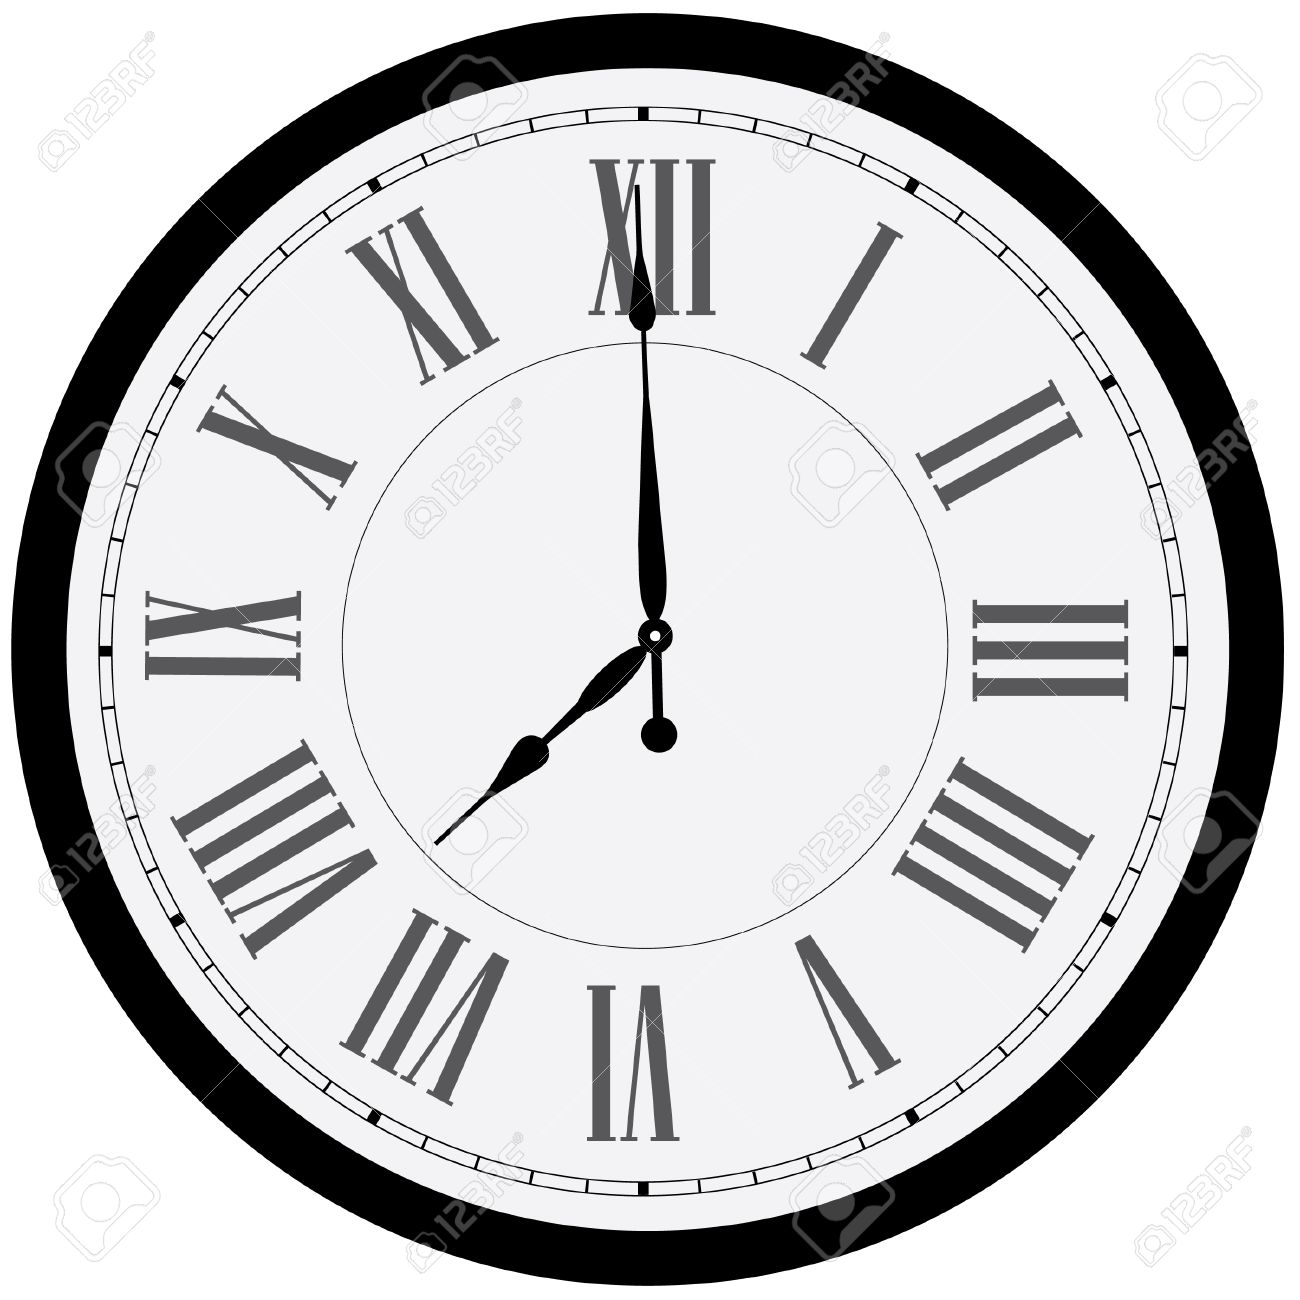 Black Wall Clock Black Wall Clock Vector Isolated Clock On Wall Shows Eight Oclock